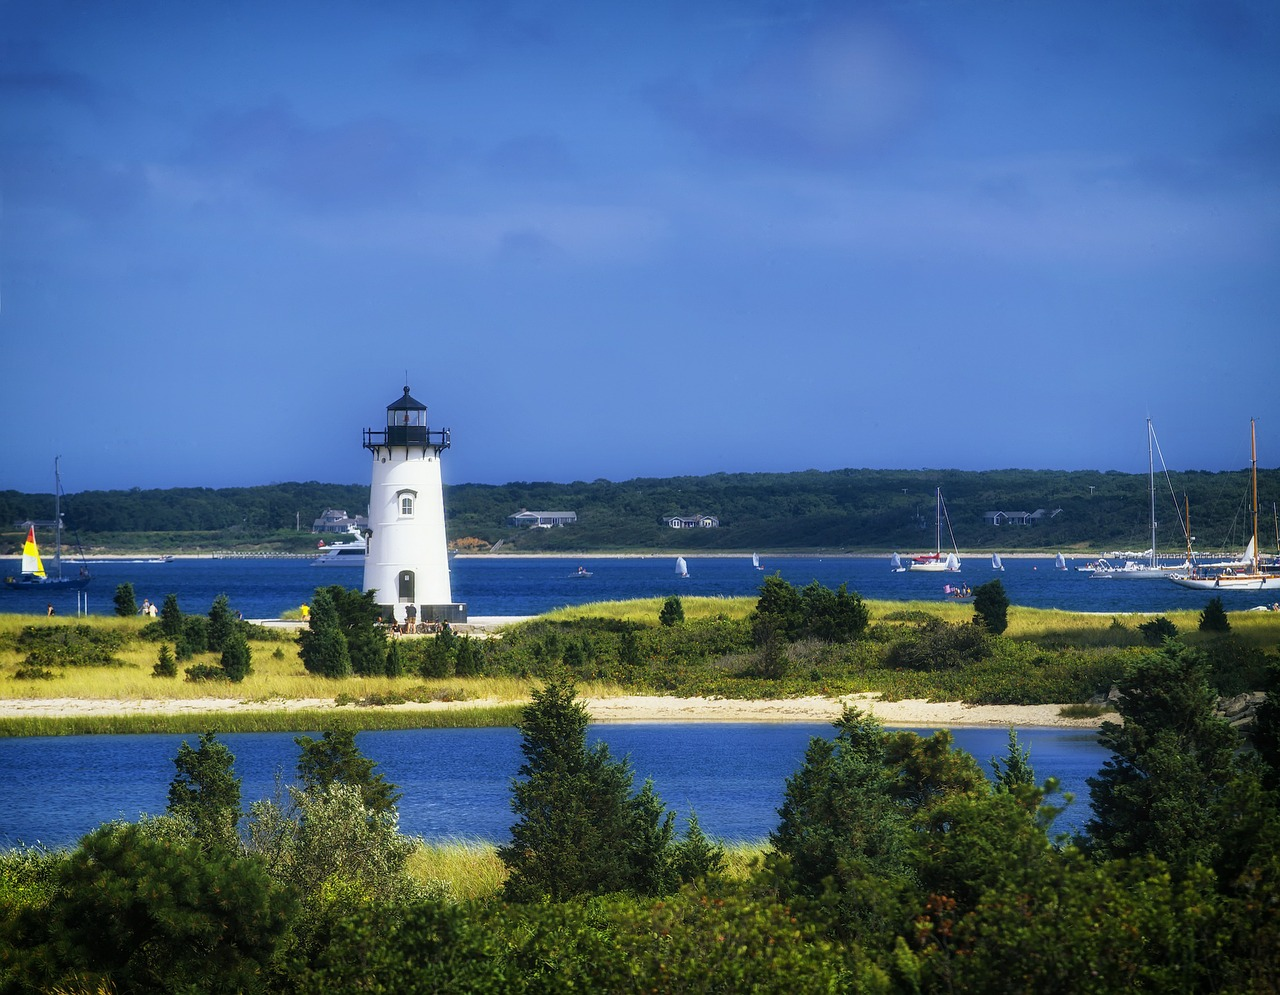 edgartown-light-station-404176_1280